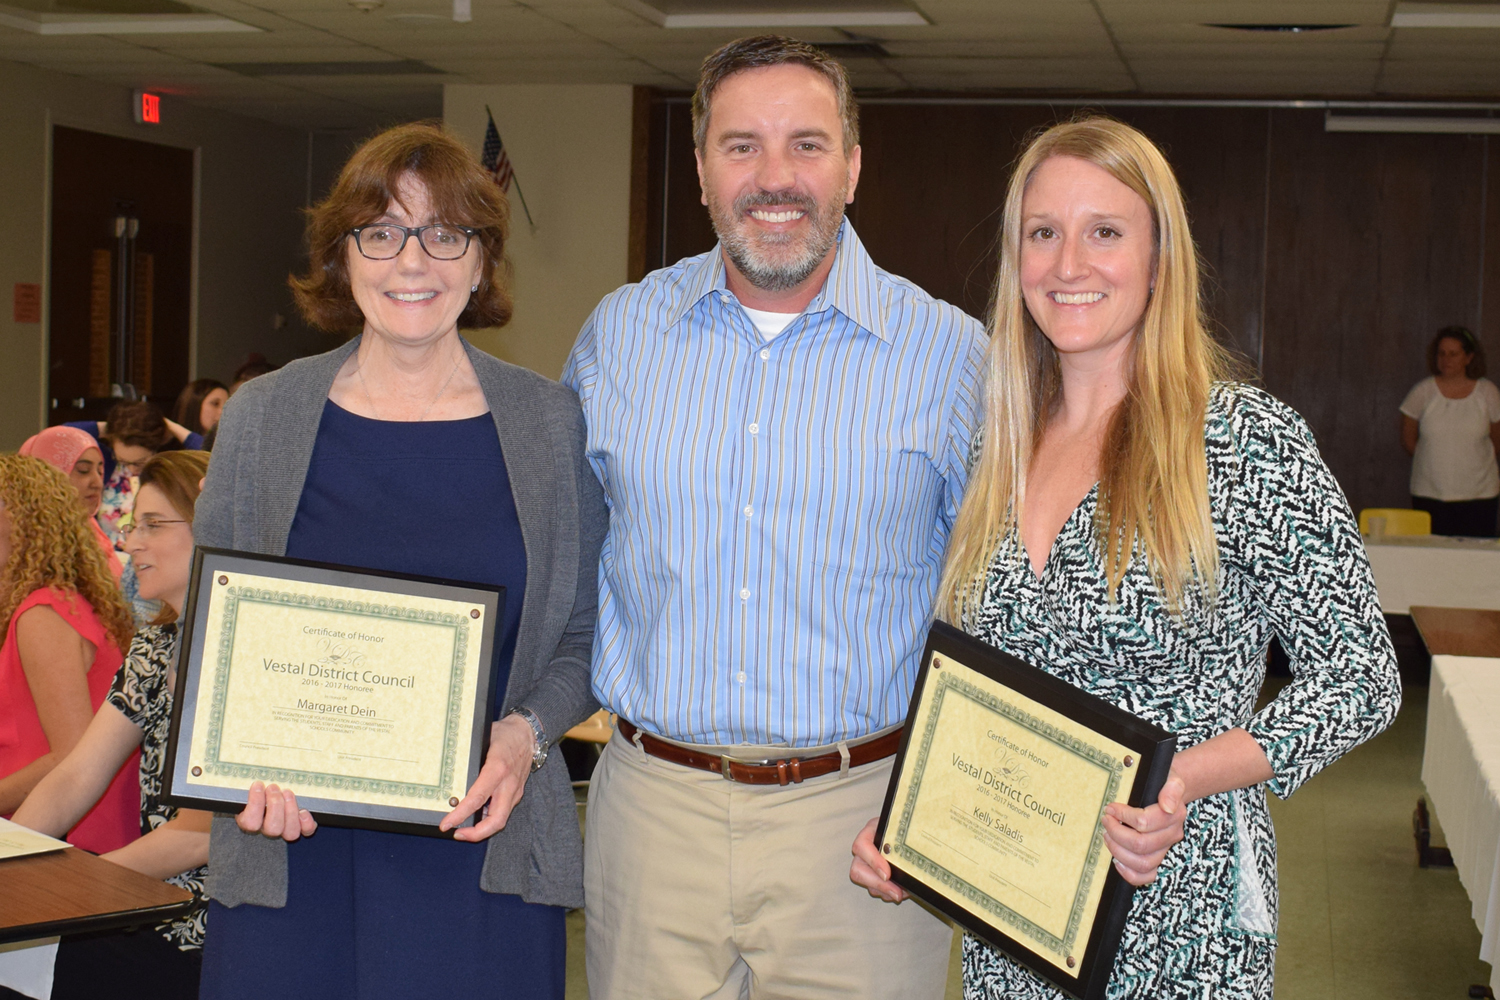 C A P T O  Honorees Margaret Dein and Kelly Saladis pose with District Council representative Derek